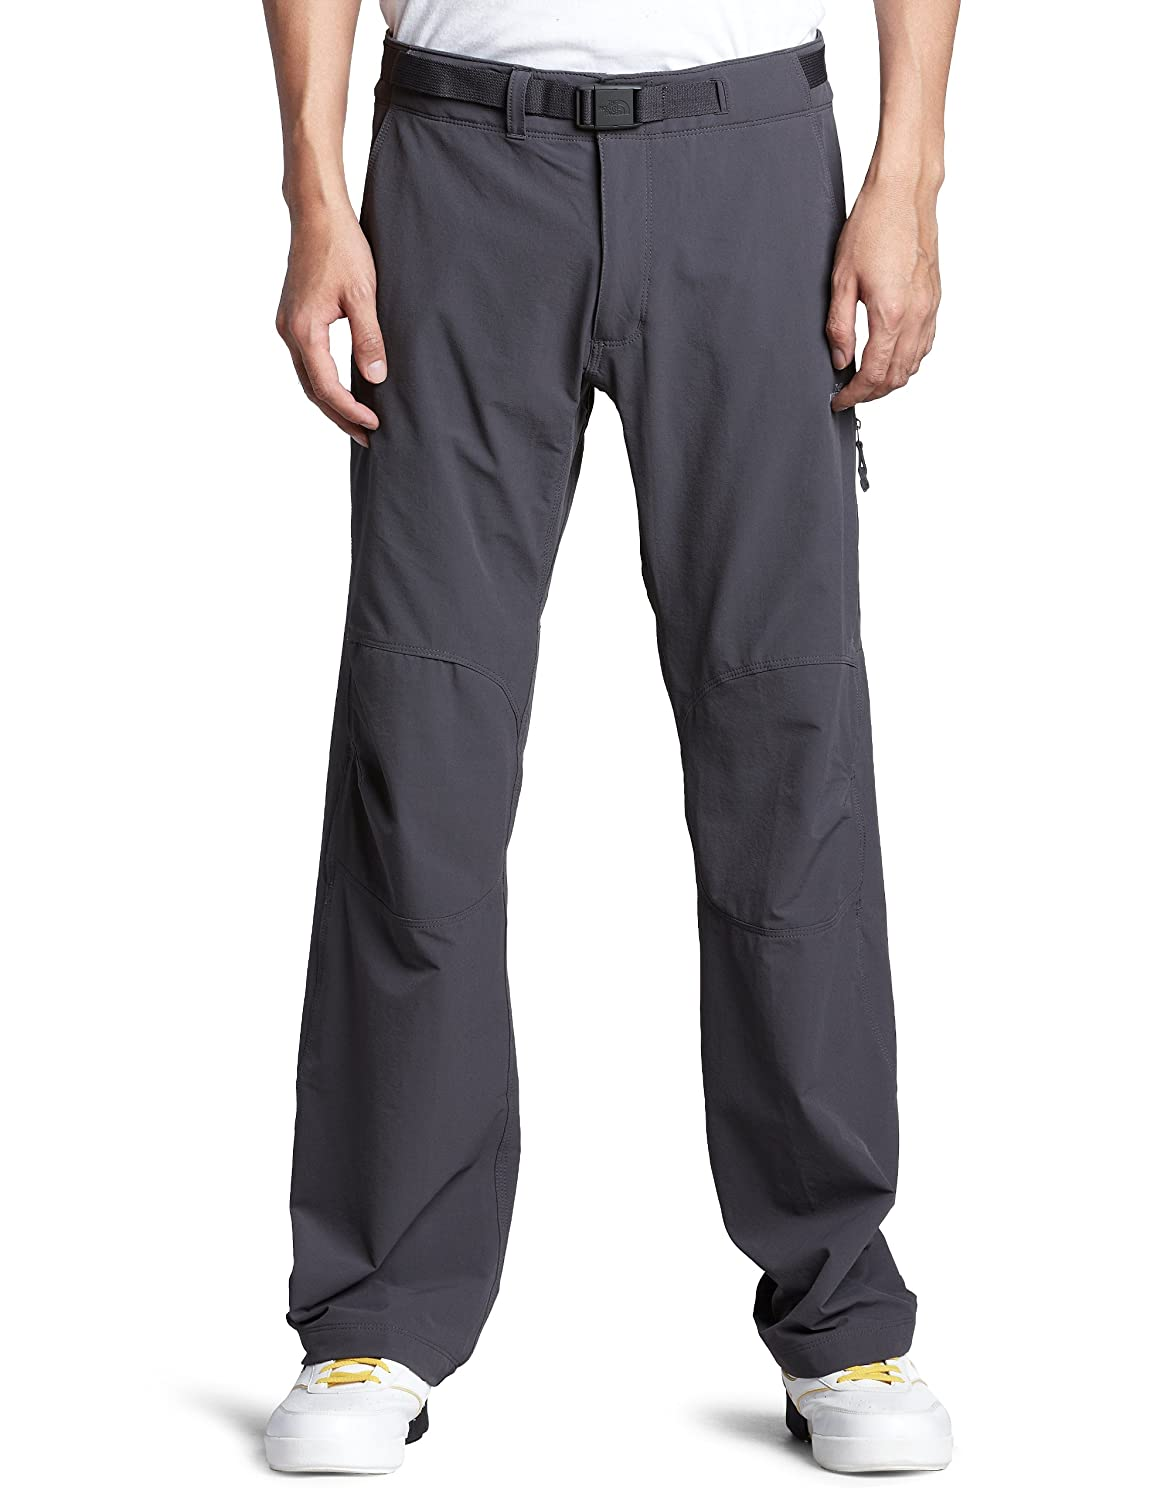 THE NORTH FACE Outbound Pant Men